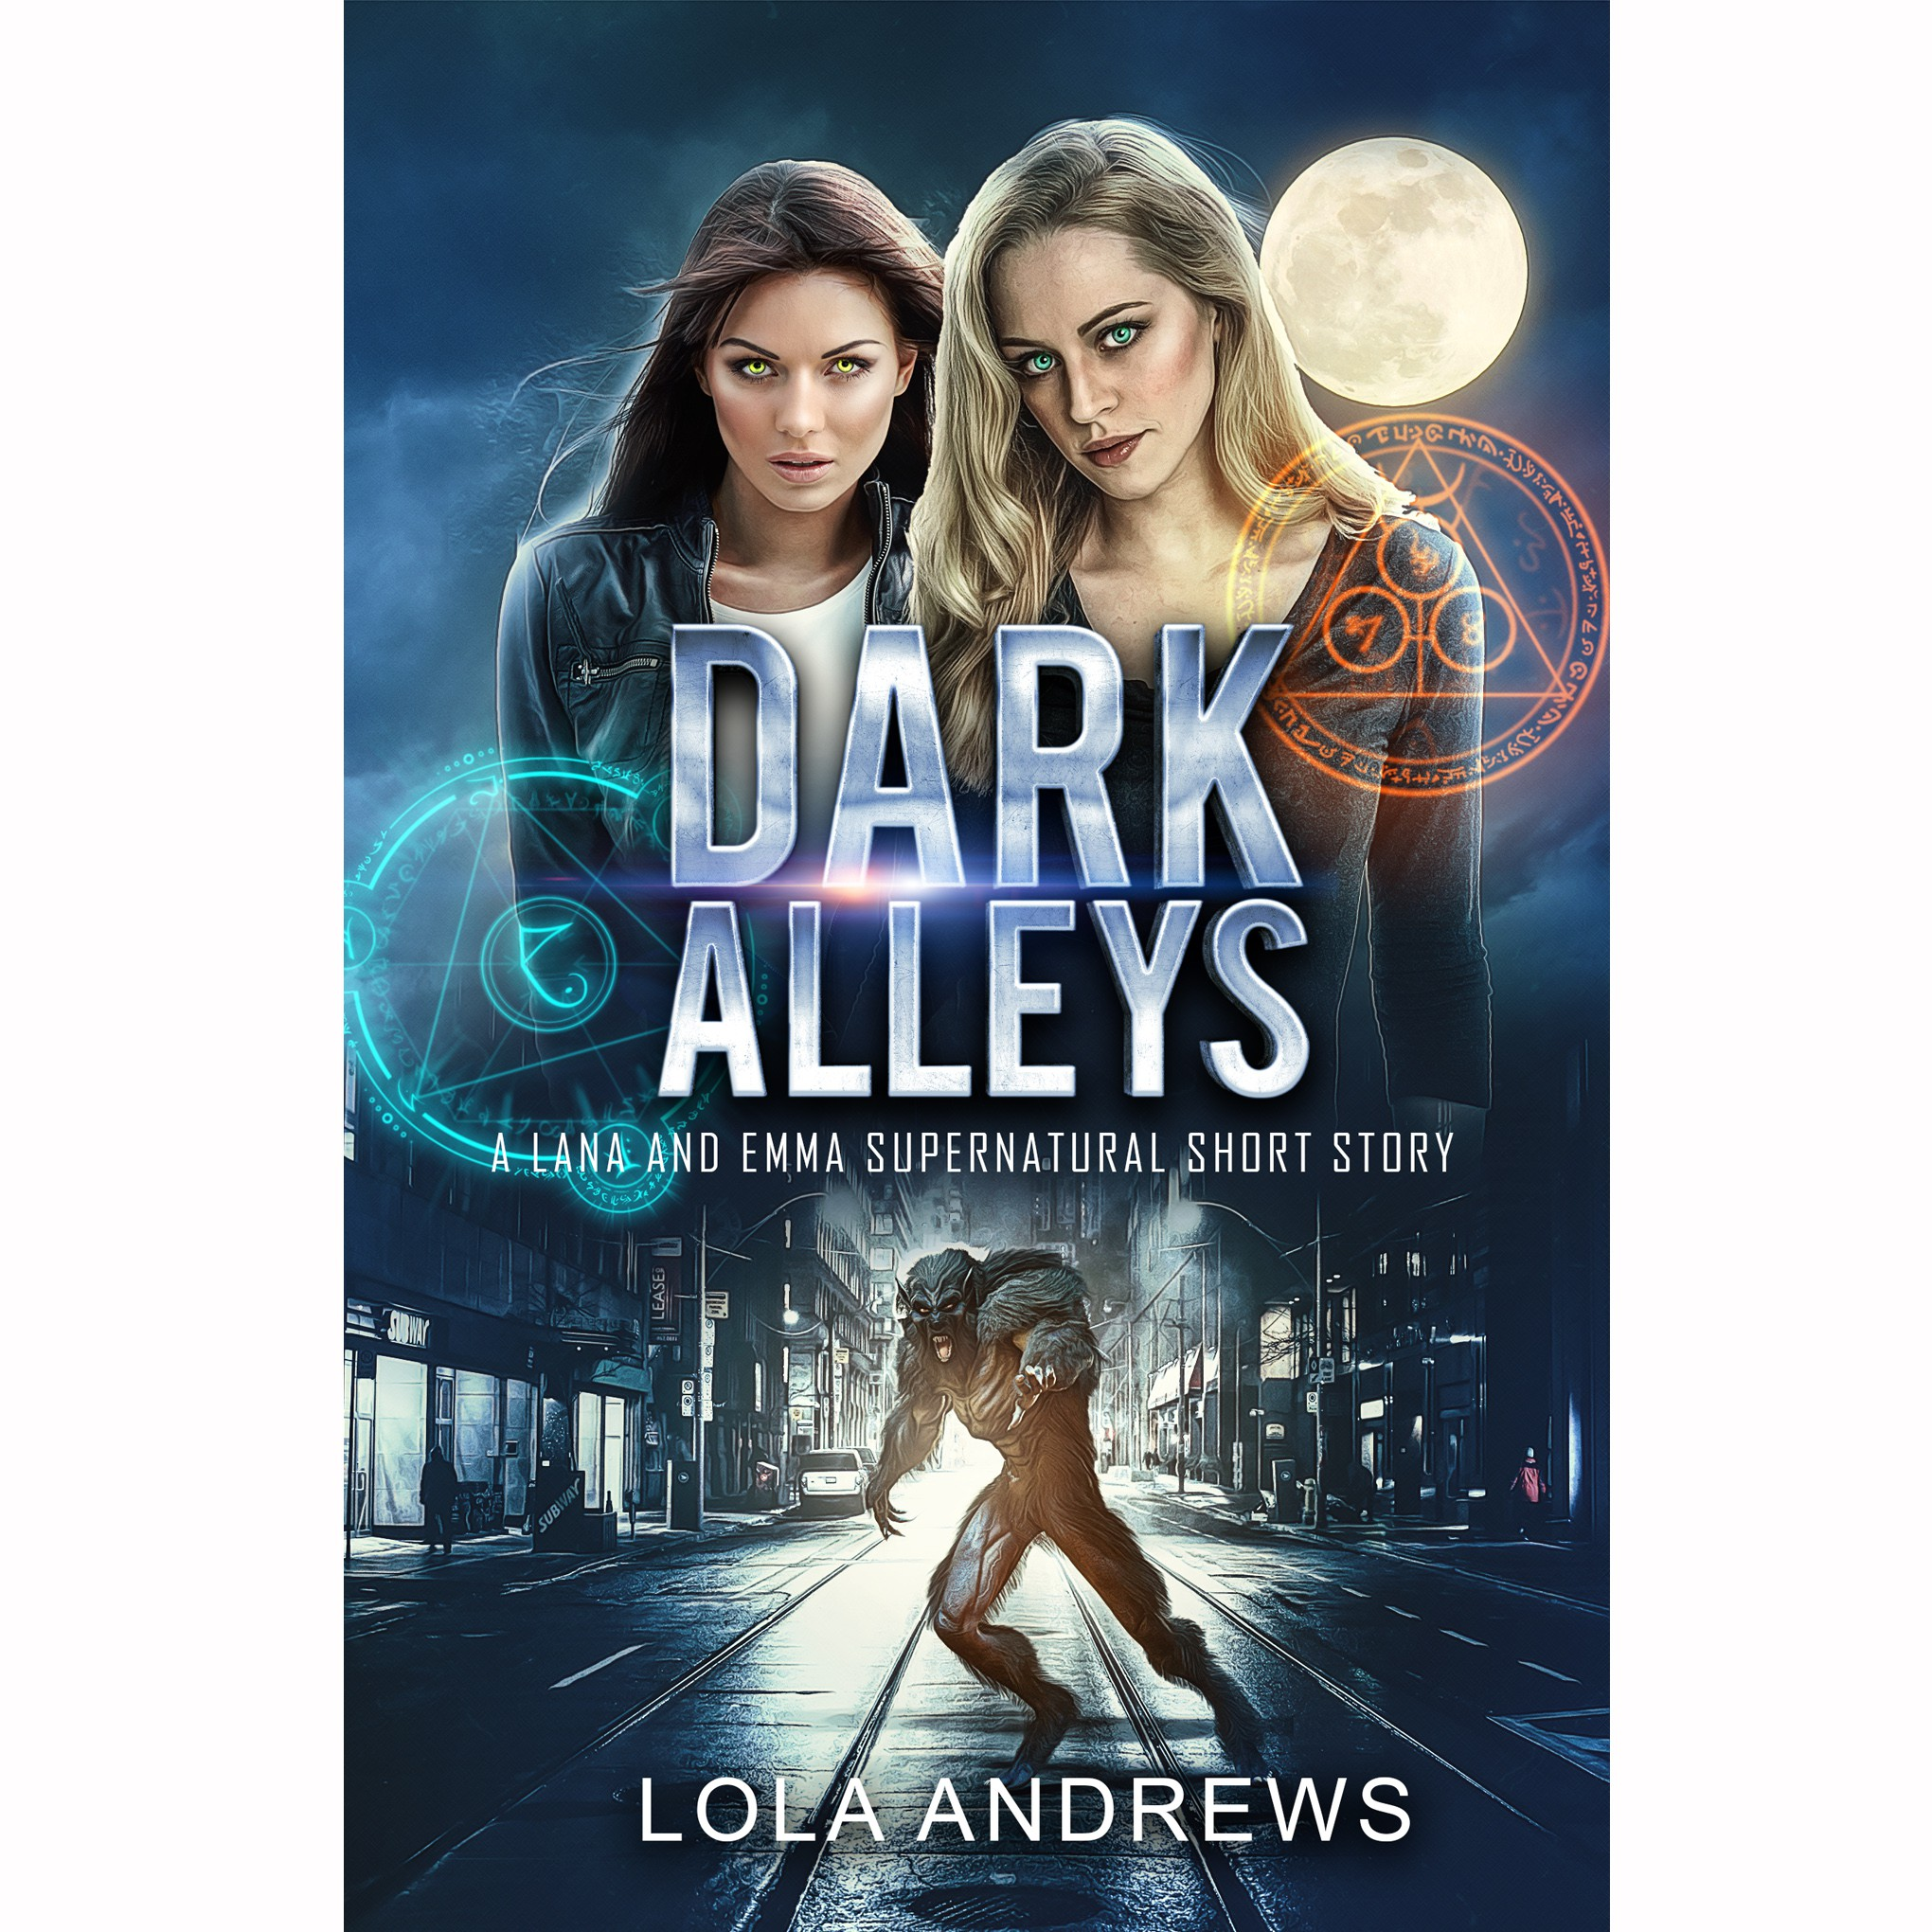 eBook cover for lesbian romance/urban fantasy story (werewolves and lesbians!)